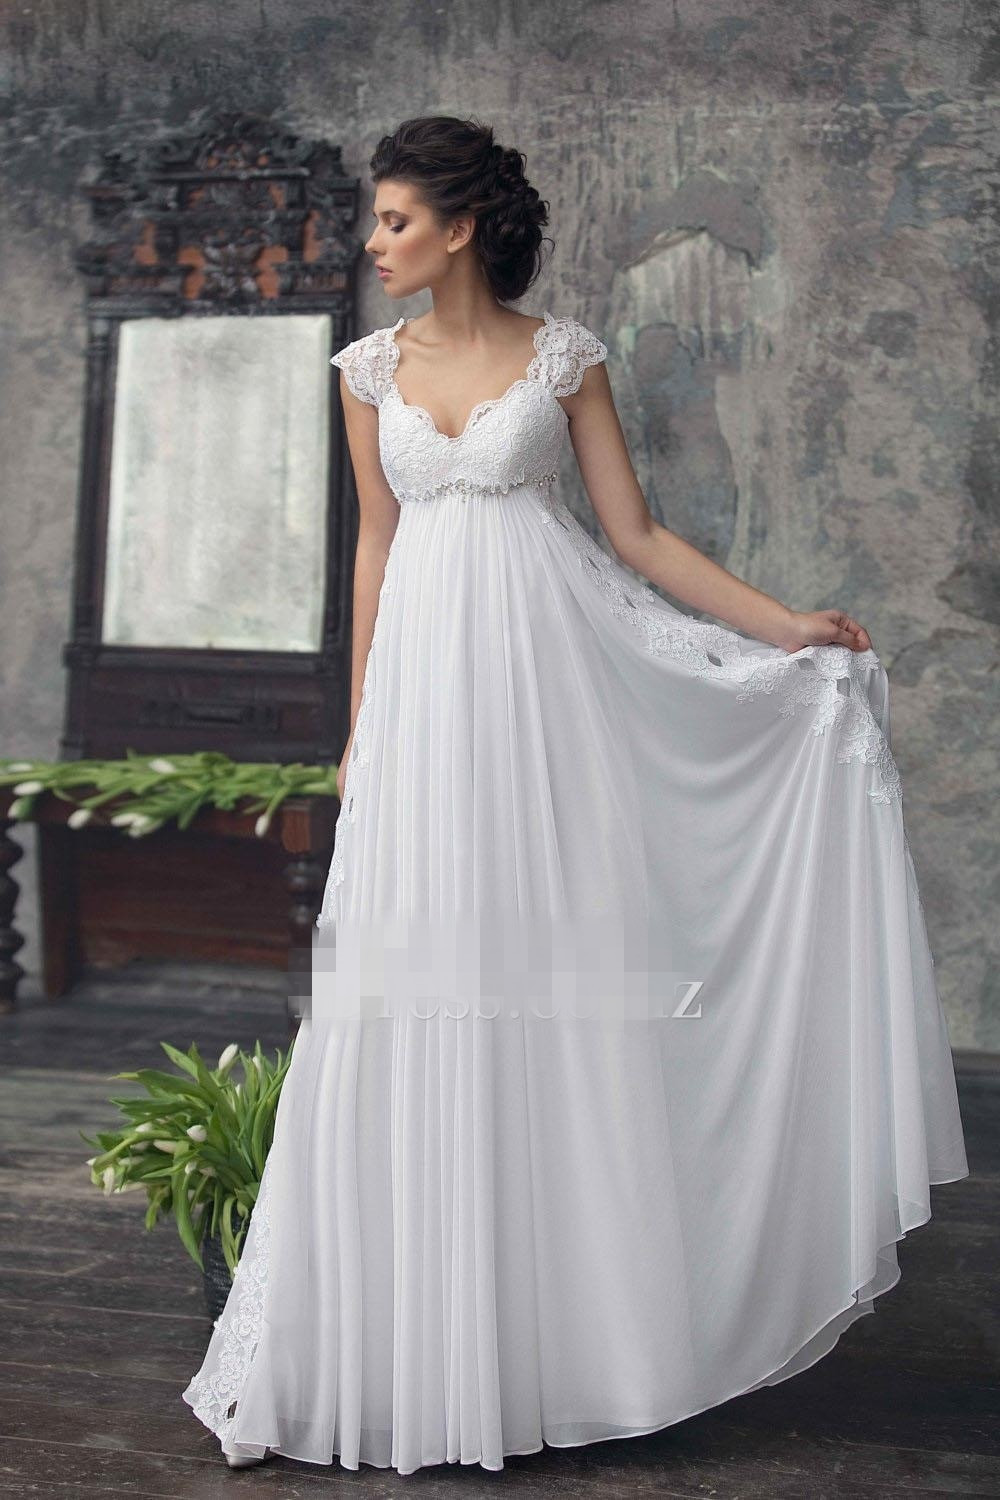 Lace Wedding Gowns  2017 Empire Maternity Wedding Dresses Beaded Lace Chiffon